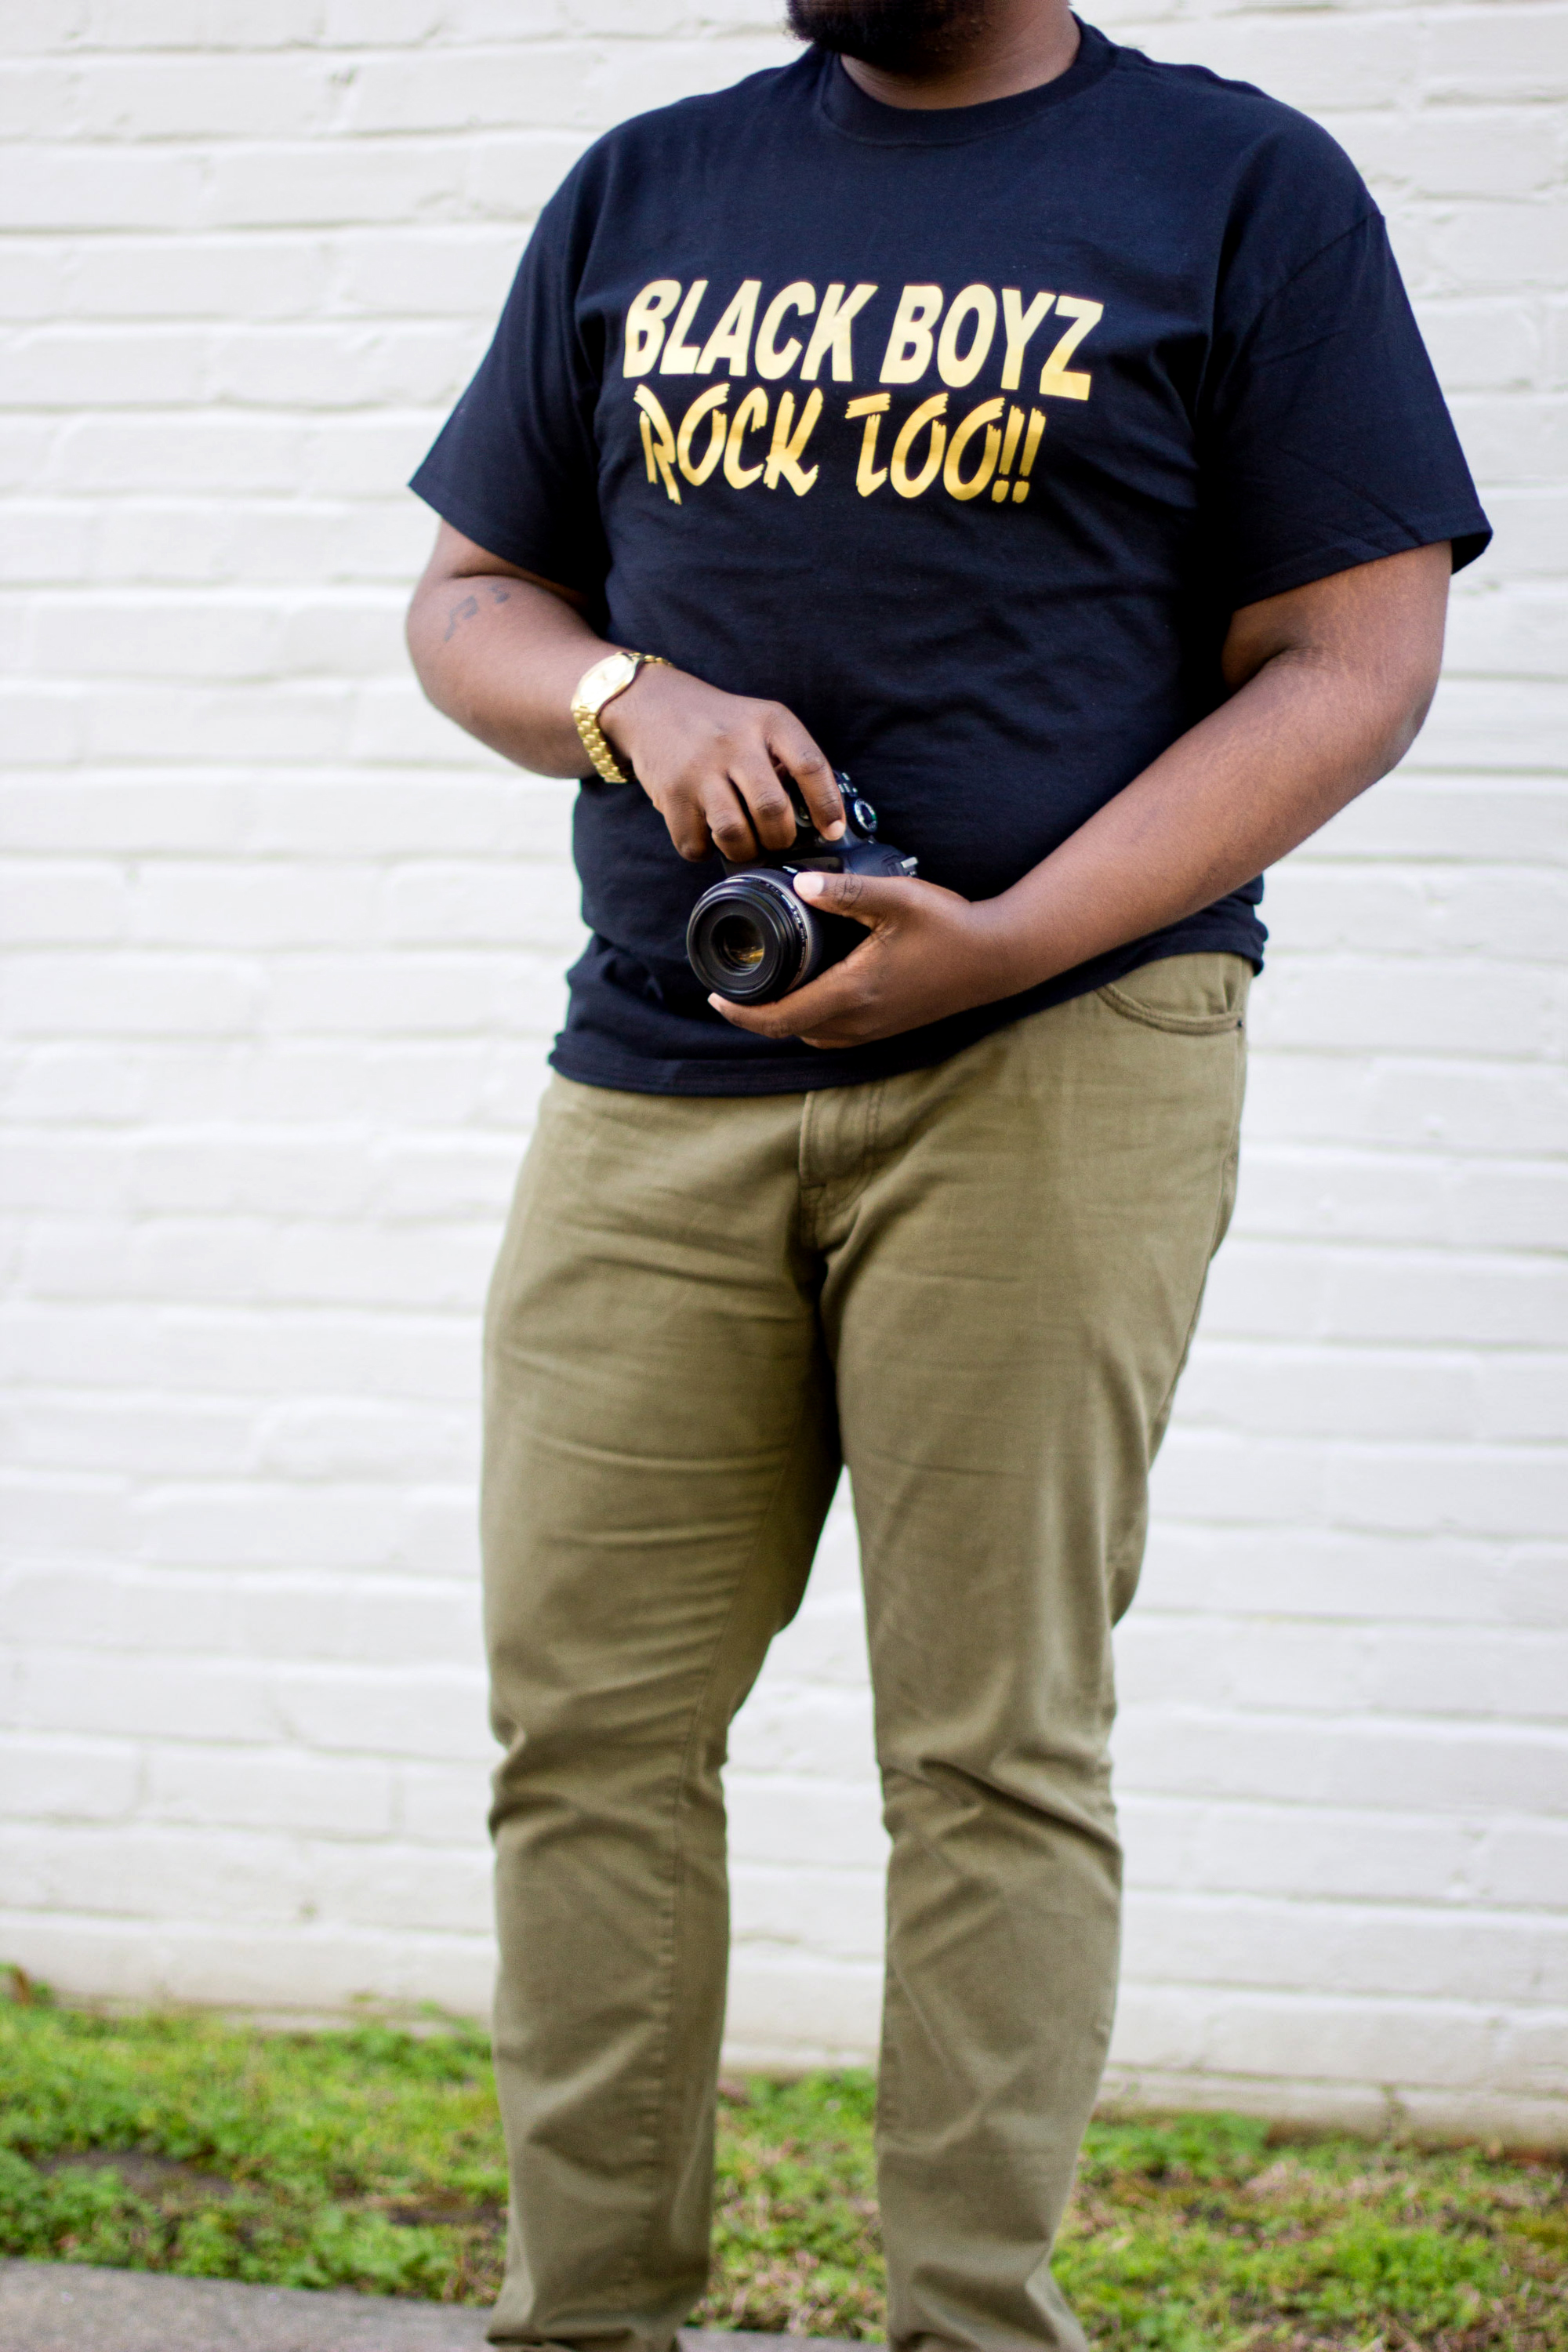 Black Boyz Rock Too | Greenville NC Business + Product Photography | Bryant Tyson Photography | www.blackboyzrocktoo.org